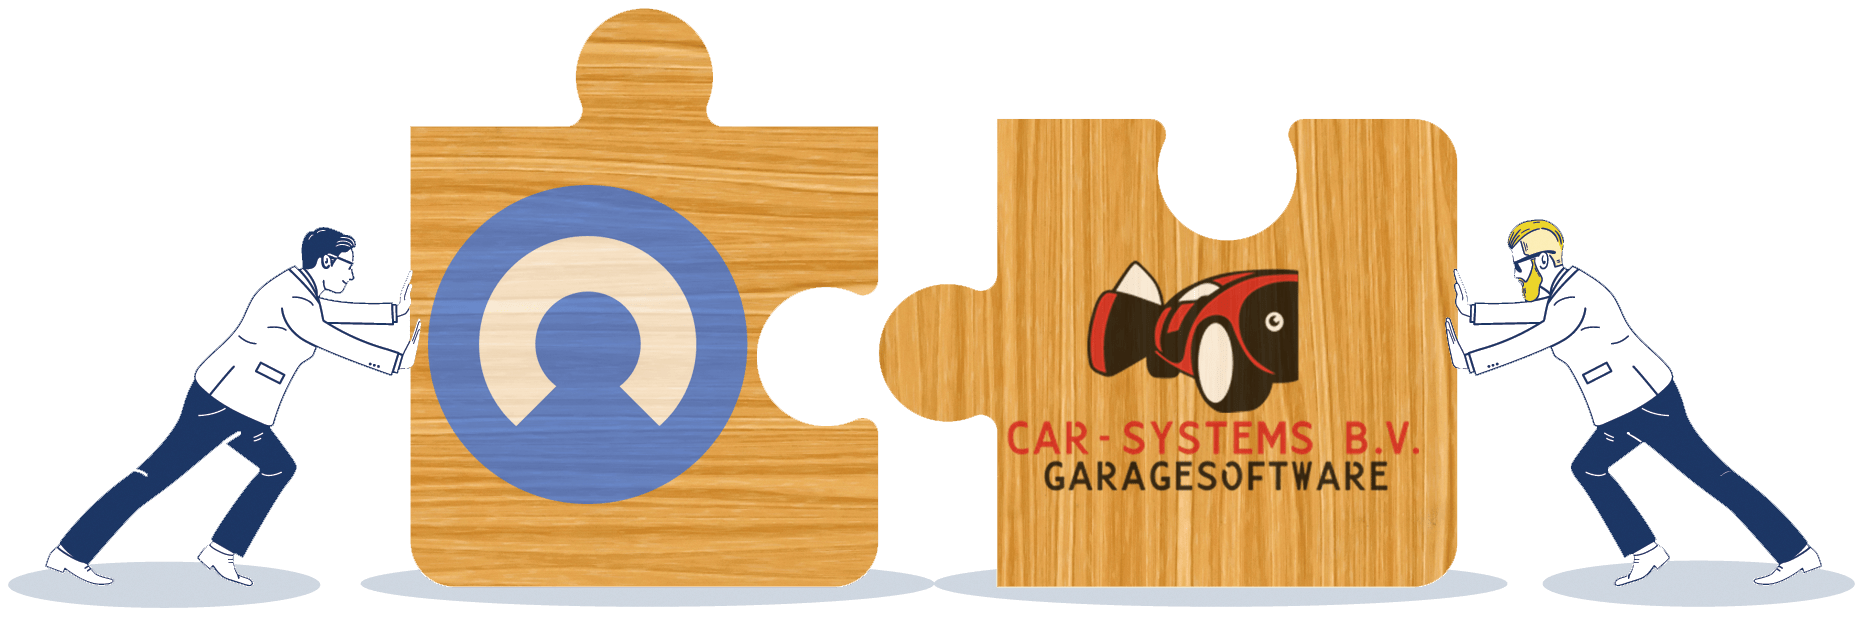 CSS Car Systems + slimme telefonie